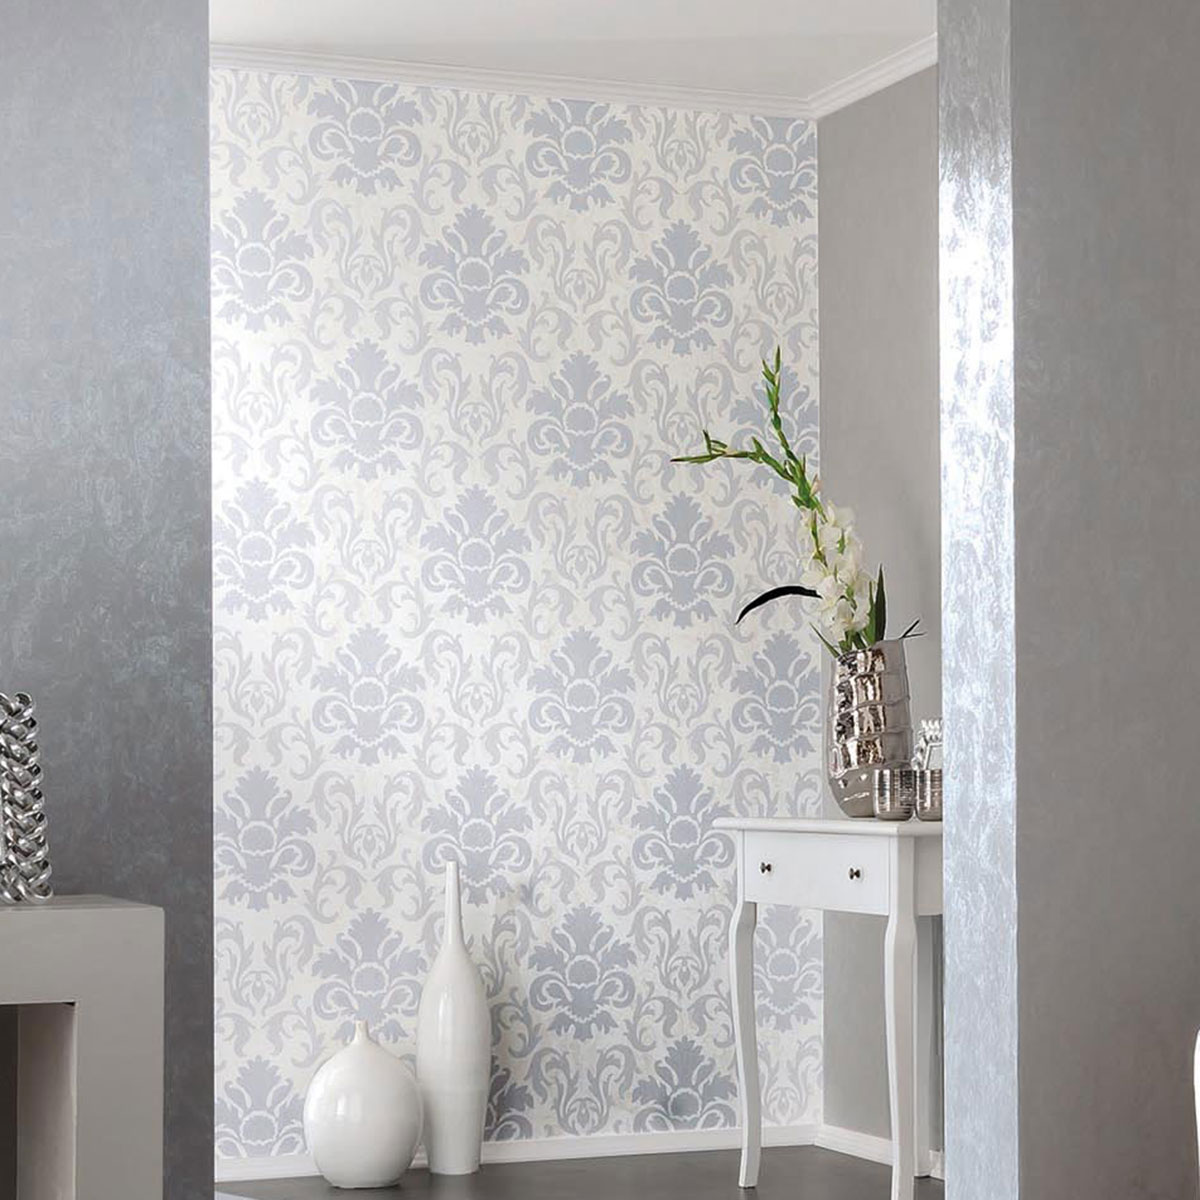 Carat Damask Glitter Wallpaper Silver and White P+S 13343-20